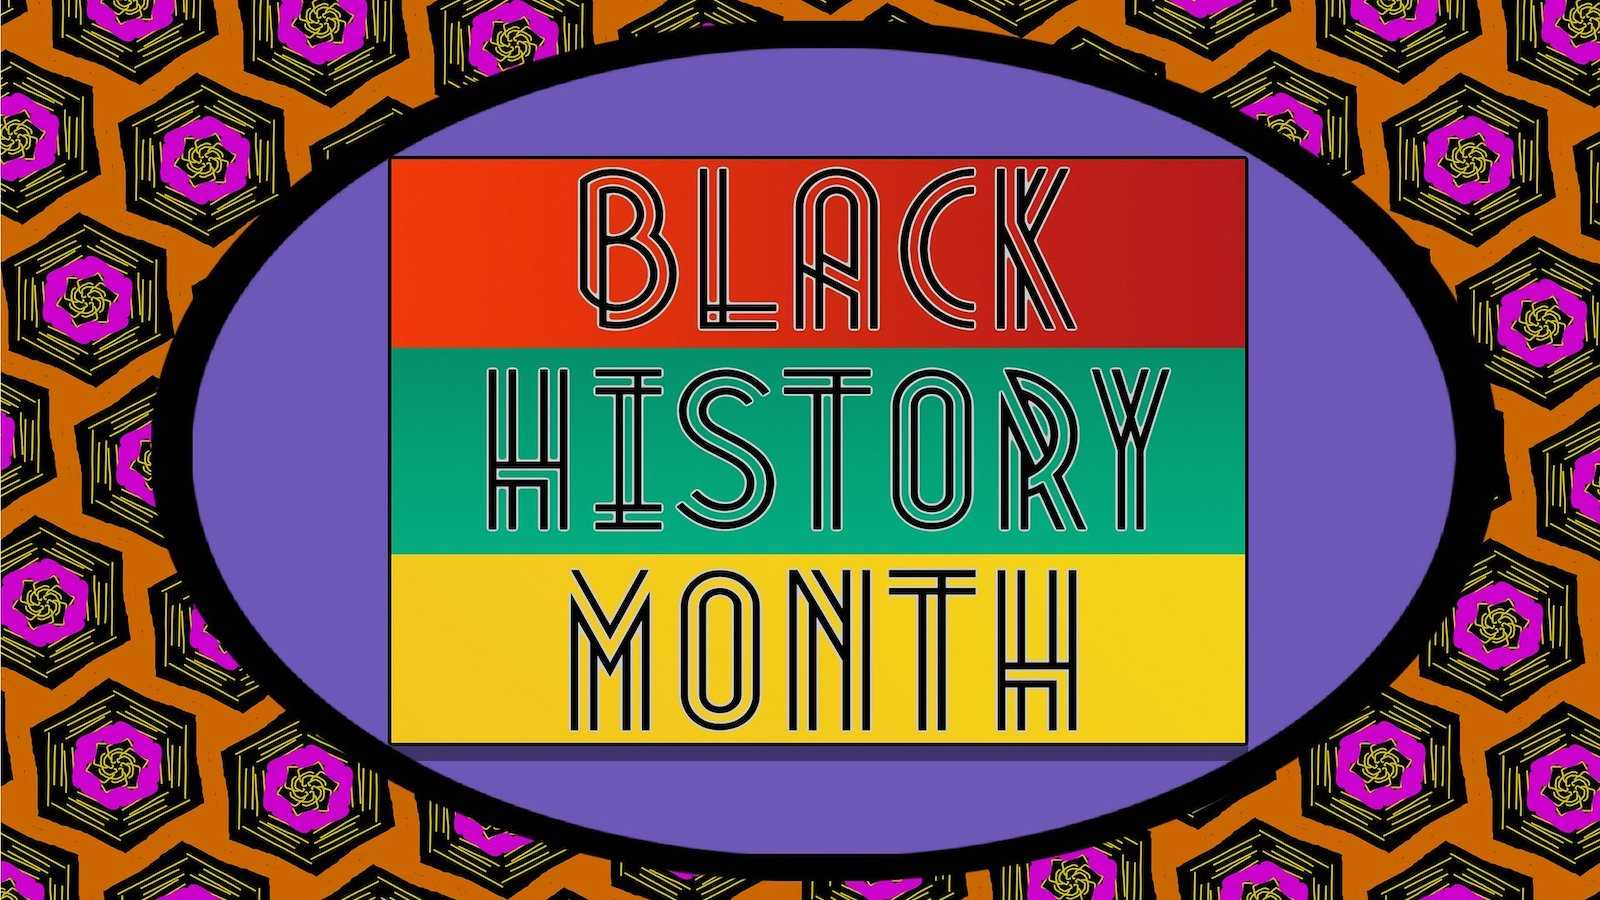 Black History Month Wallpapers 1